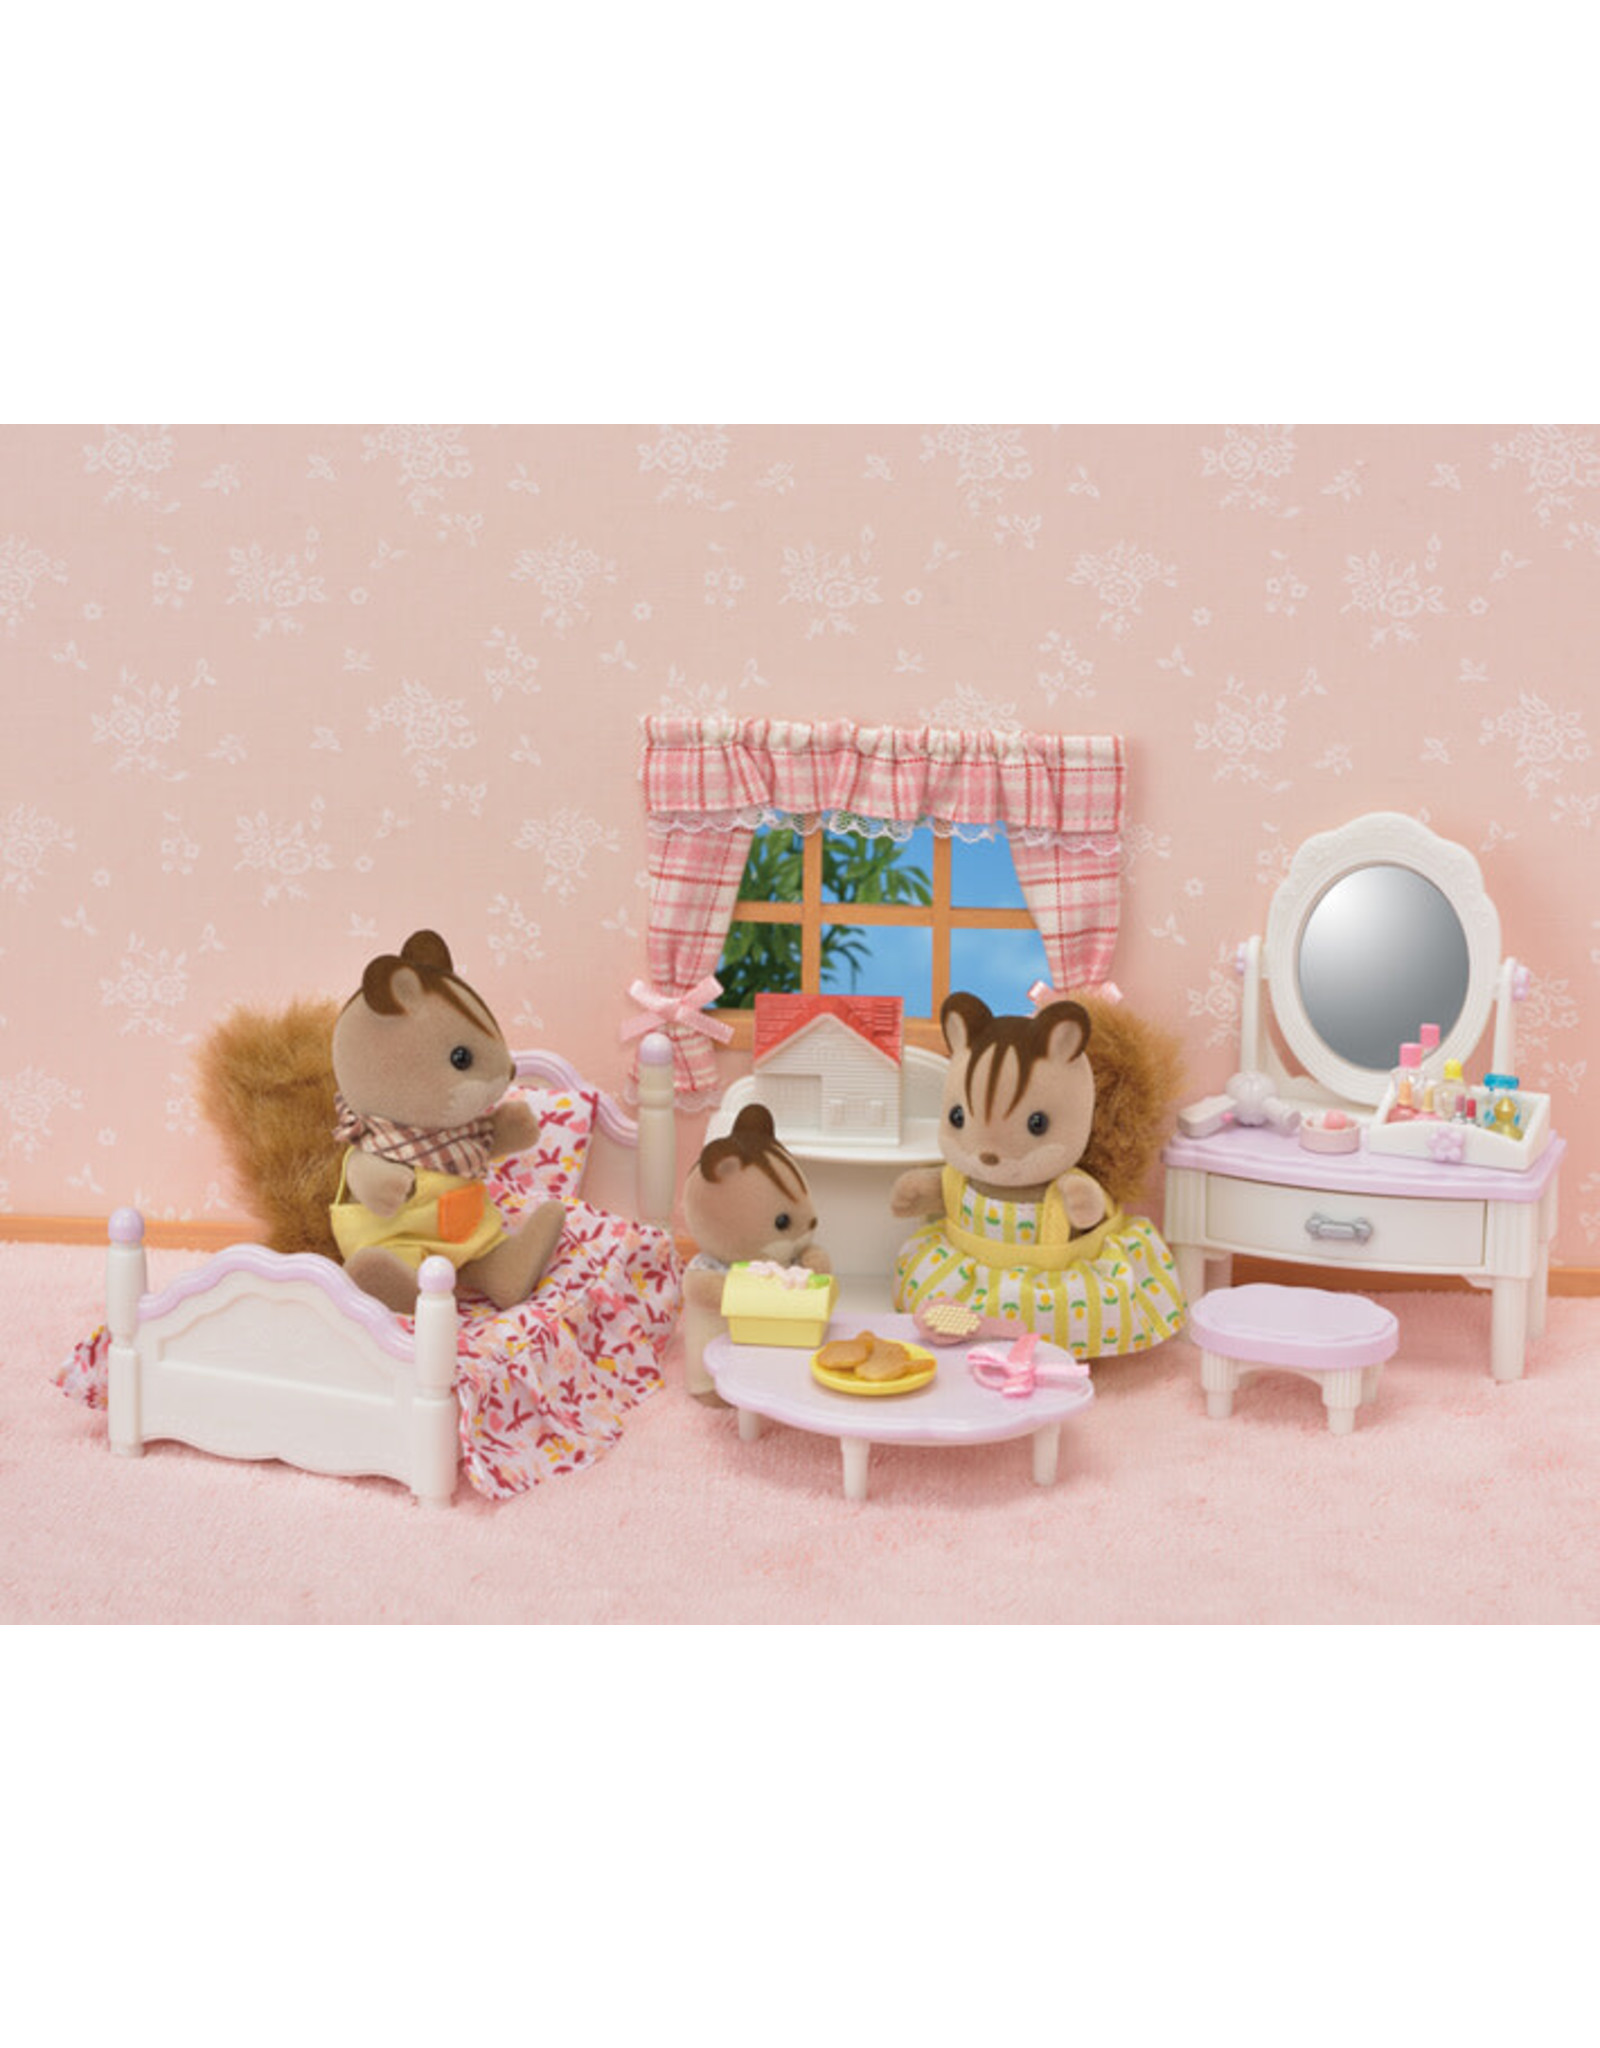 Calico Critters Calico Critters Bedroom And Vanity Set